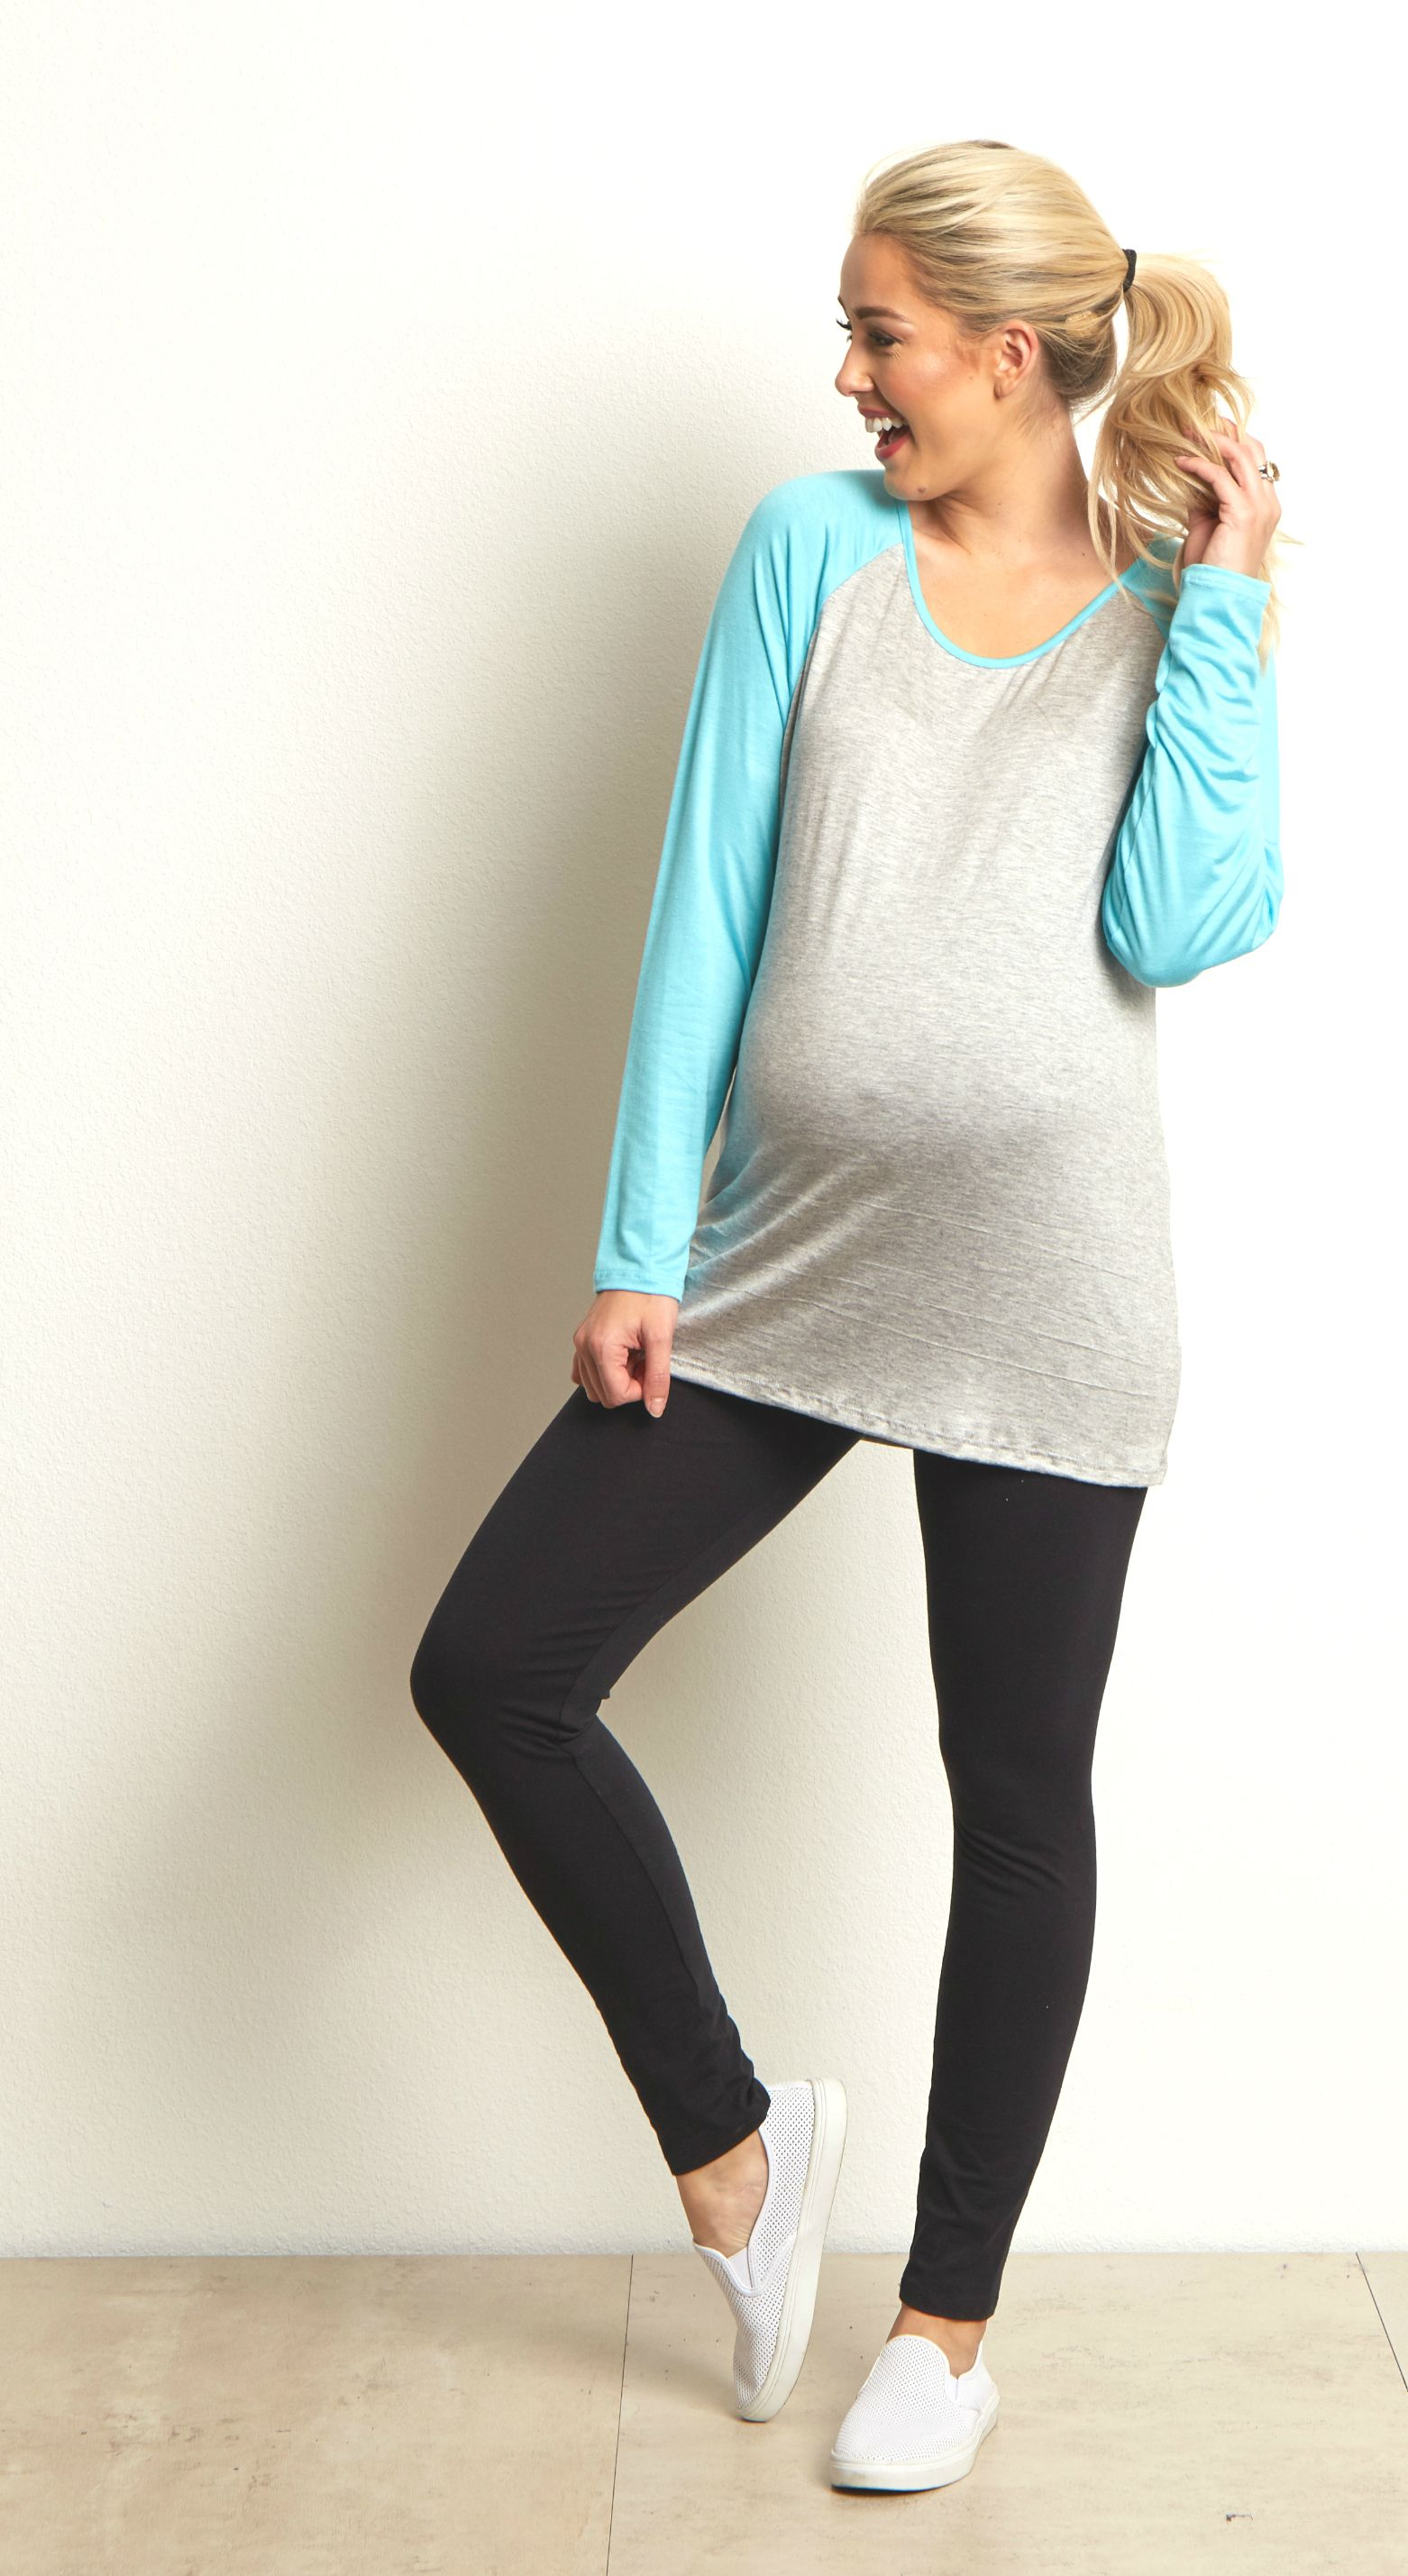 fe6fd715921b8 Get active in basics from maternity leggings to maternity tank tops and  baseball inspired maternity tops